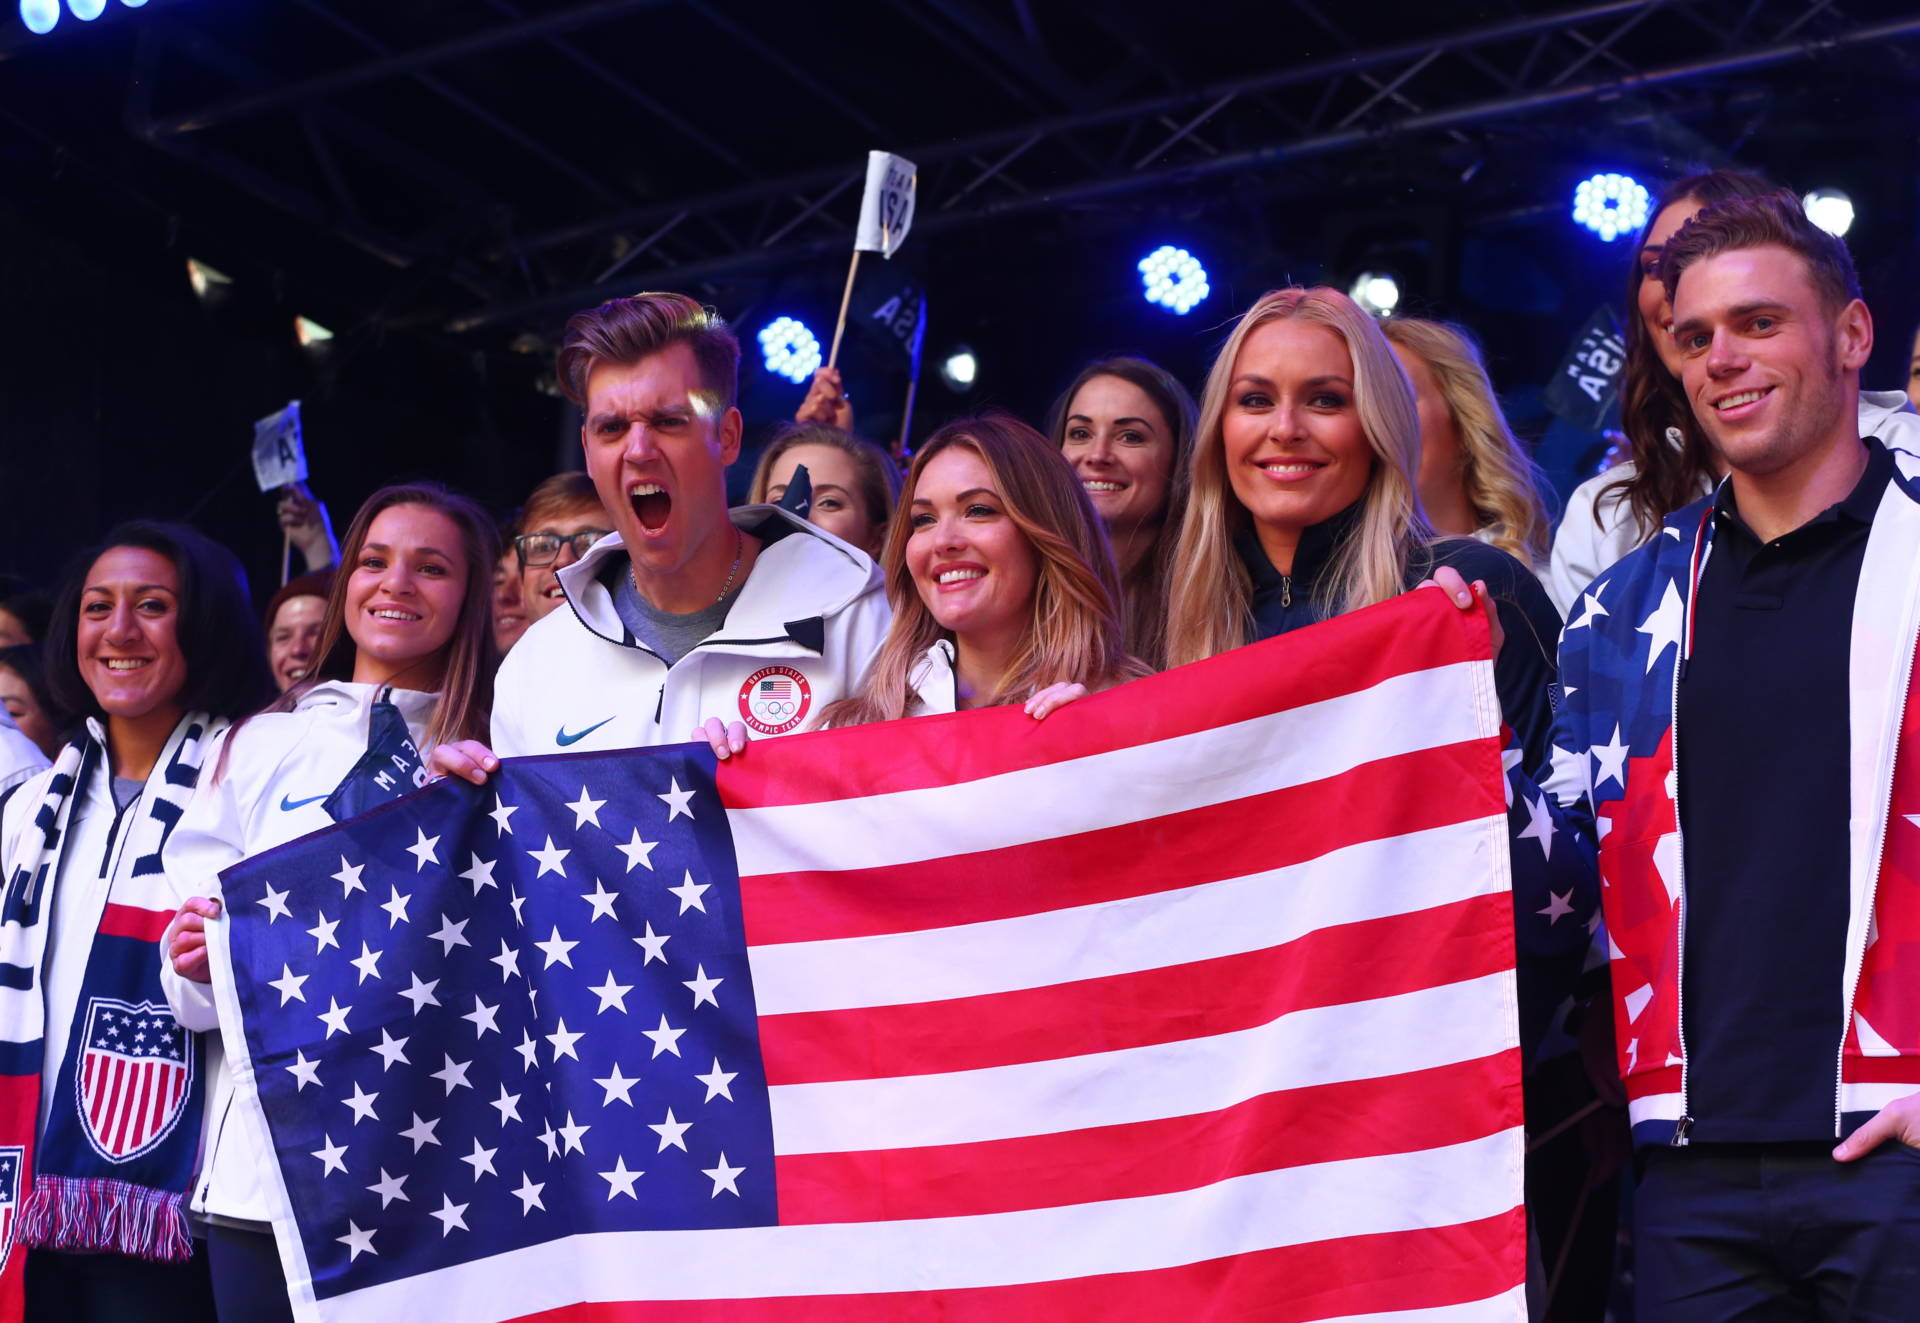 Bobsledder Elana Meyers Taylor, snowboarder Alex Deibold, skier Lindsey Vonn, skier Gus Kenworthy and members of Team USA pose for a photo during the 100 Days Out 2018 Pyeongchang Winter Olympics Celebration. Mike Stobe/Getty Images for USOC